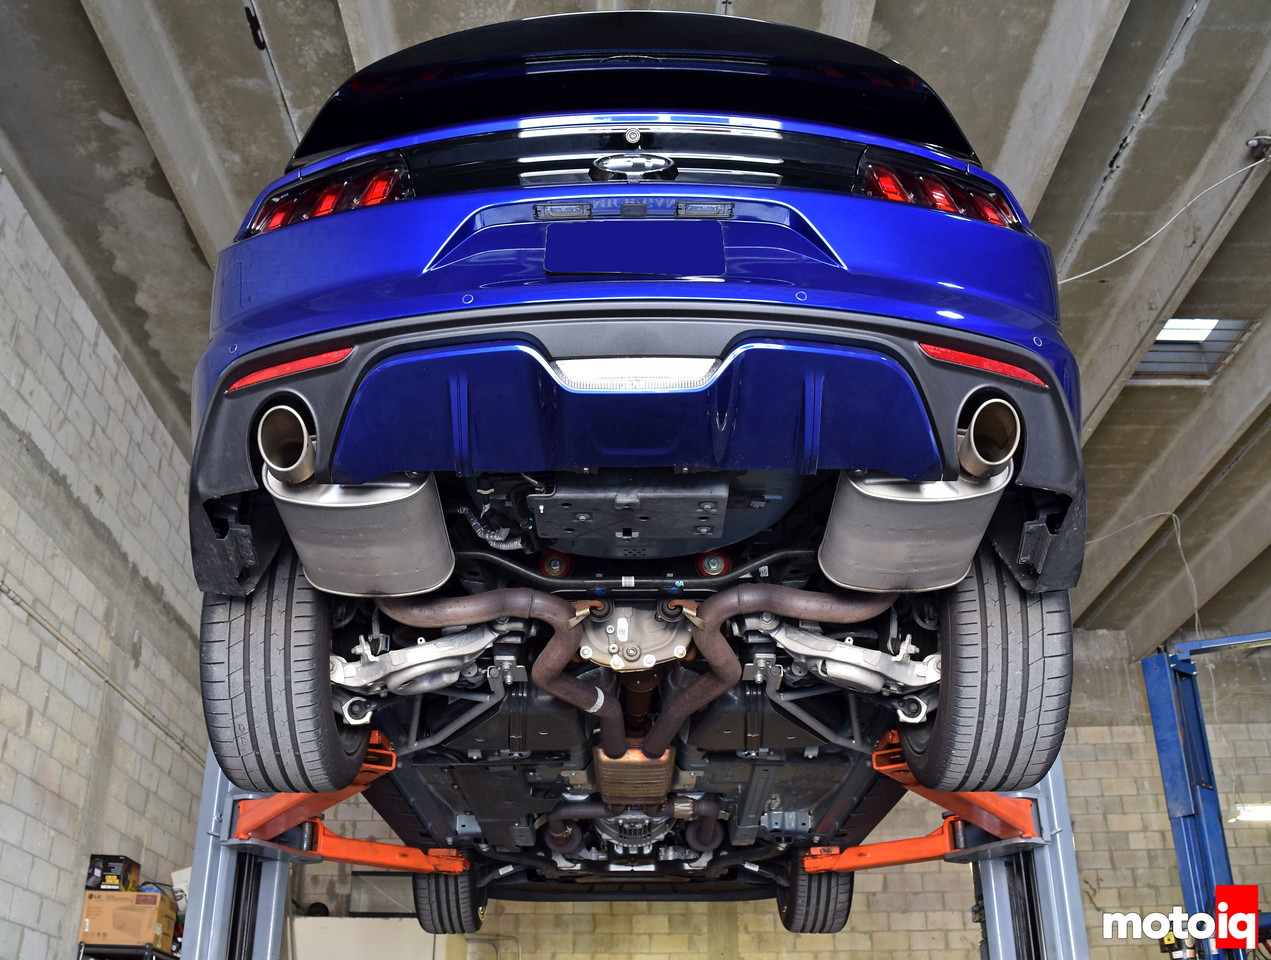 Stock S550 Mustang GT Exhaust